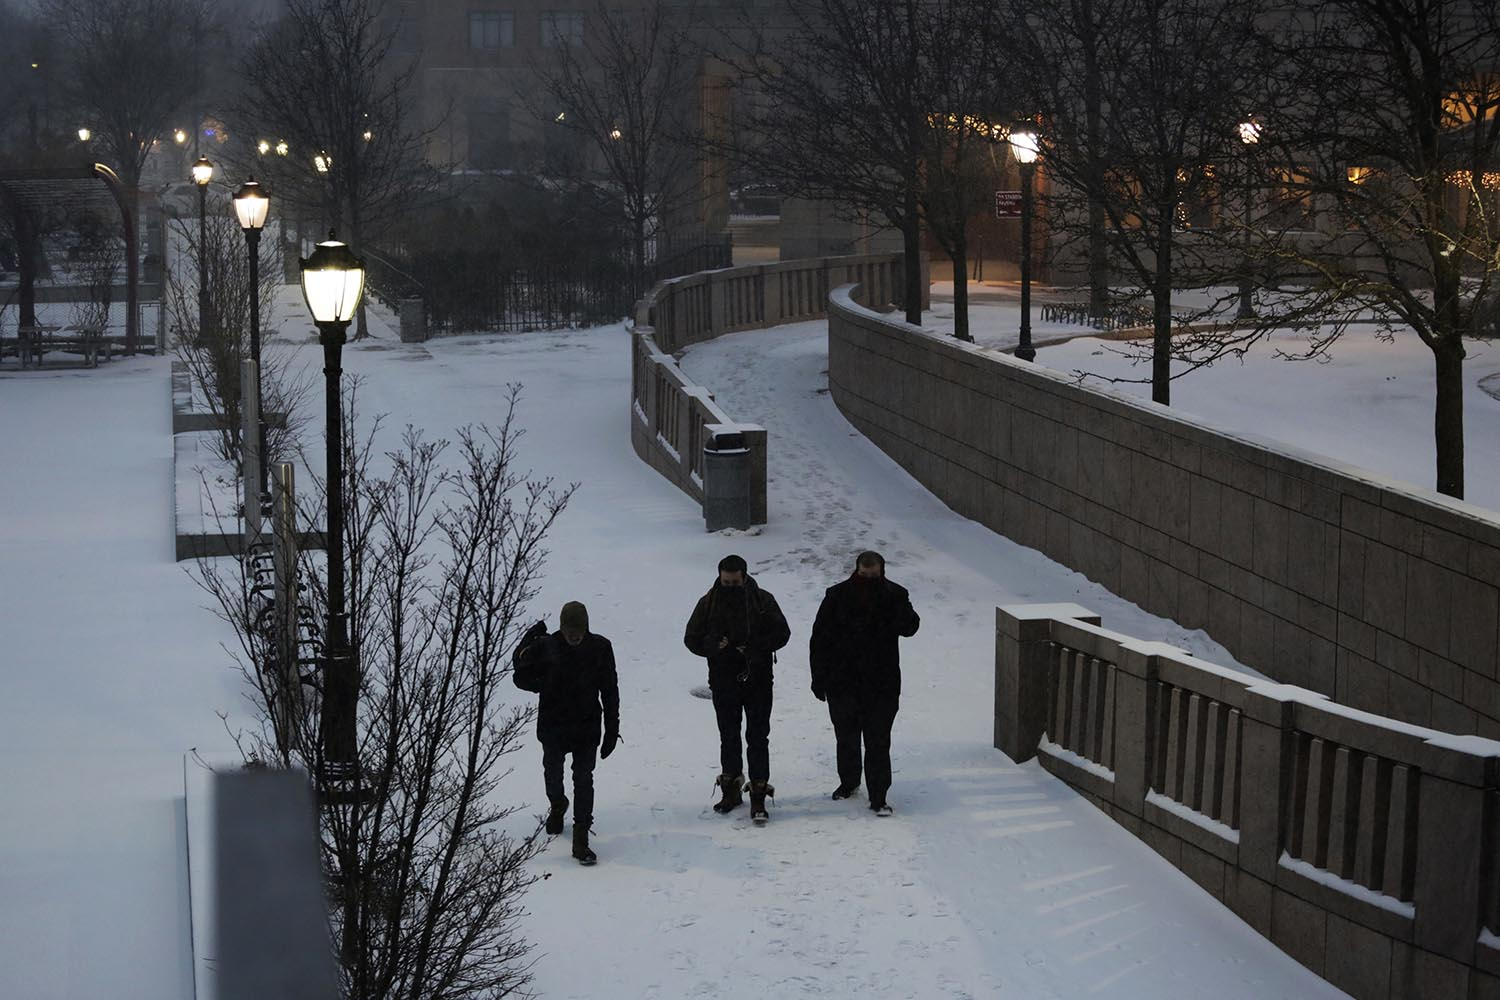 "<div class=""meta image-caption""><div class=""origin-logo origin-image ap""><span>AP</span></div><span class=""caption-text"">Men walk through an early morning snowfall, Thursday, Jan. 4, 2018, in New York. (AP Photo/Mark Lennihan)</span></div>"